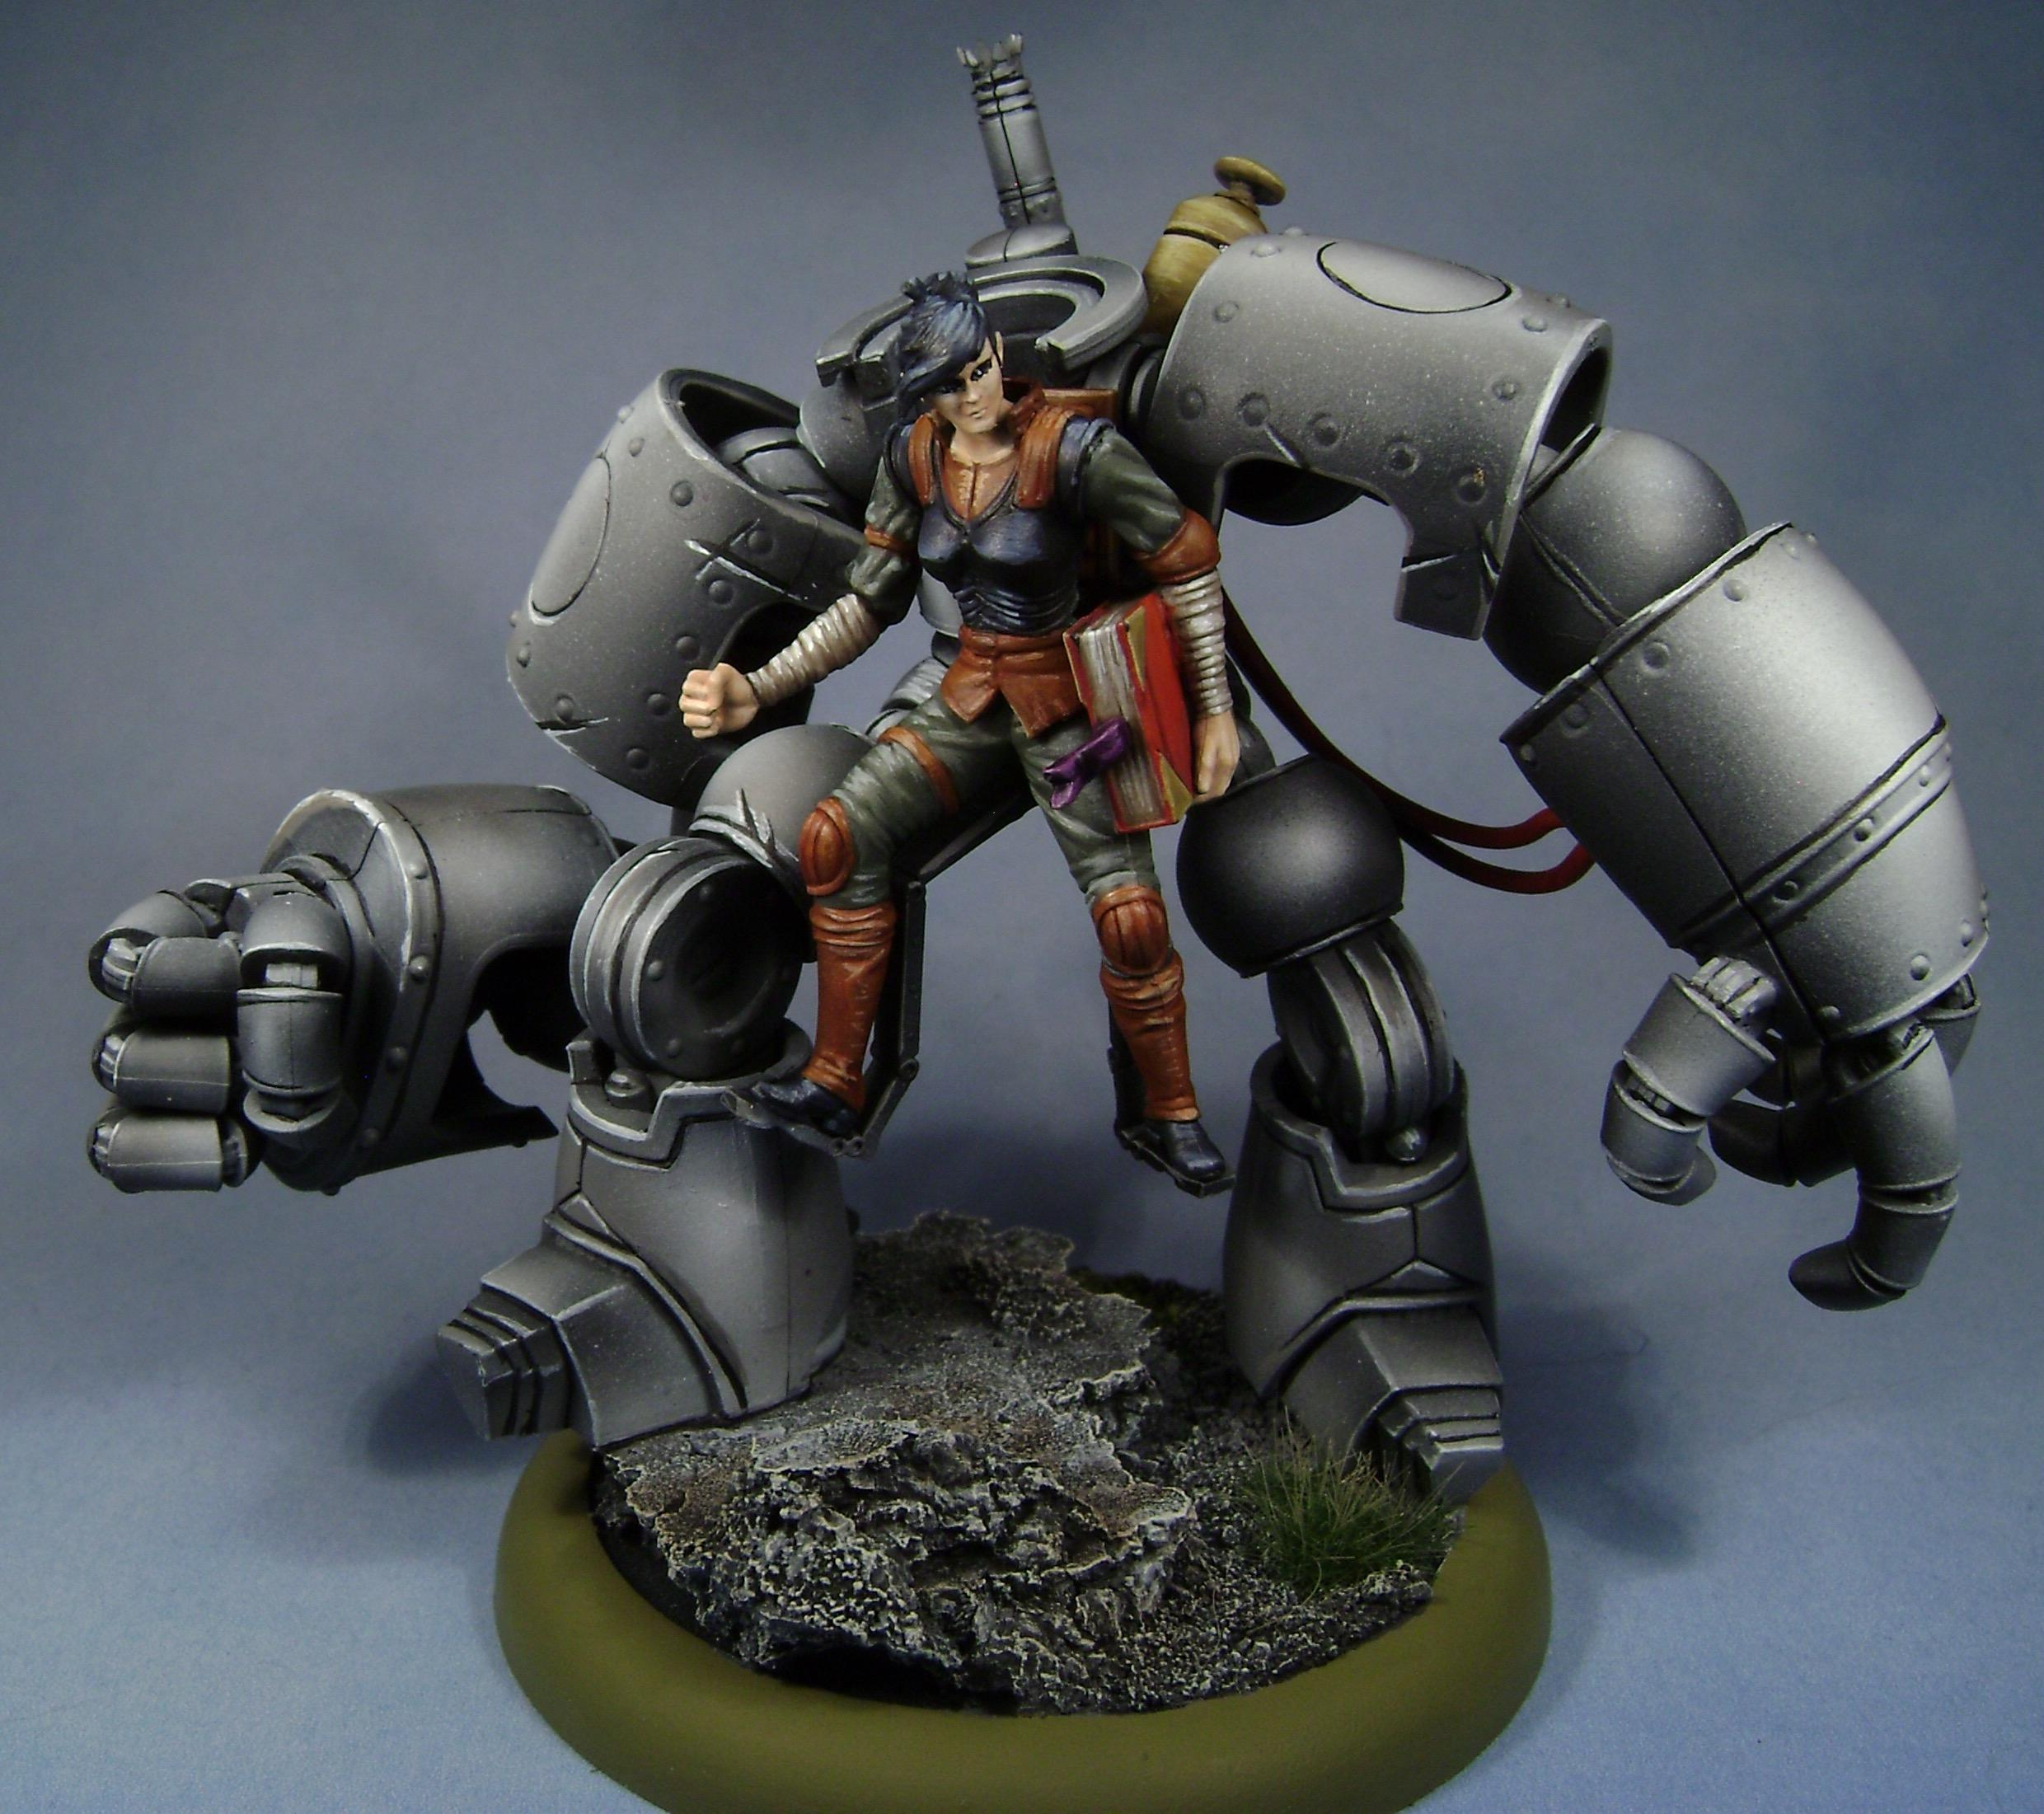 Freikorps, Hannah, Malifaux, Miniatures, Models, Non-Metallic Metal, Outcasts, Painted